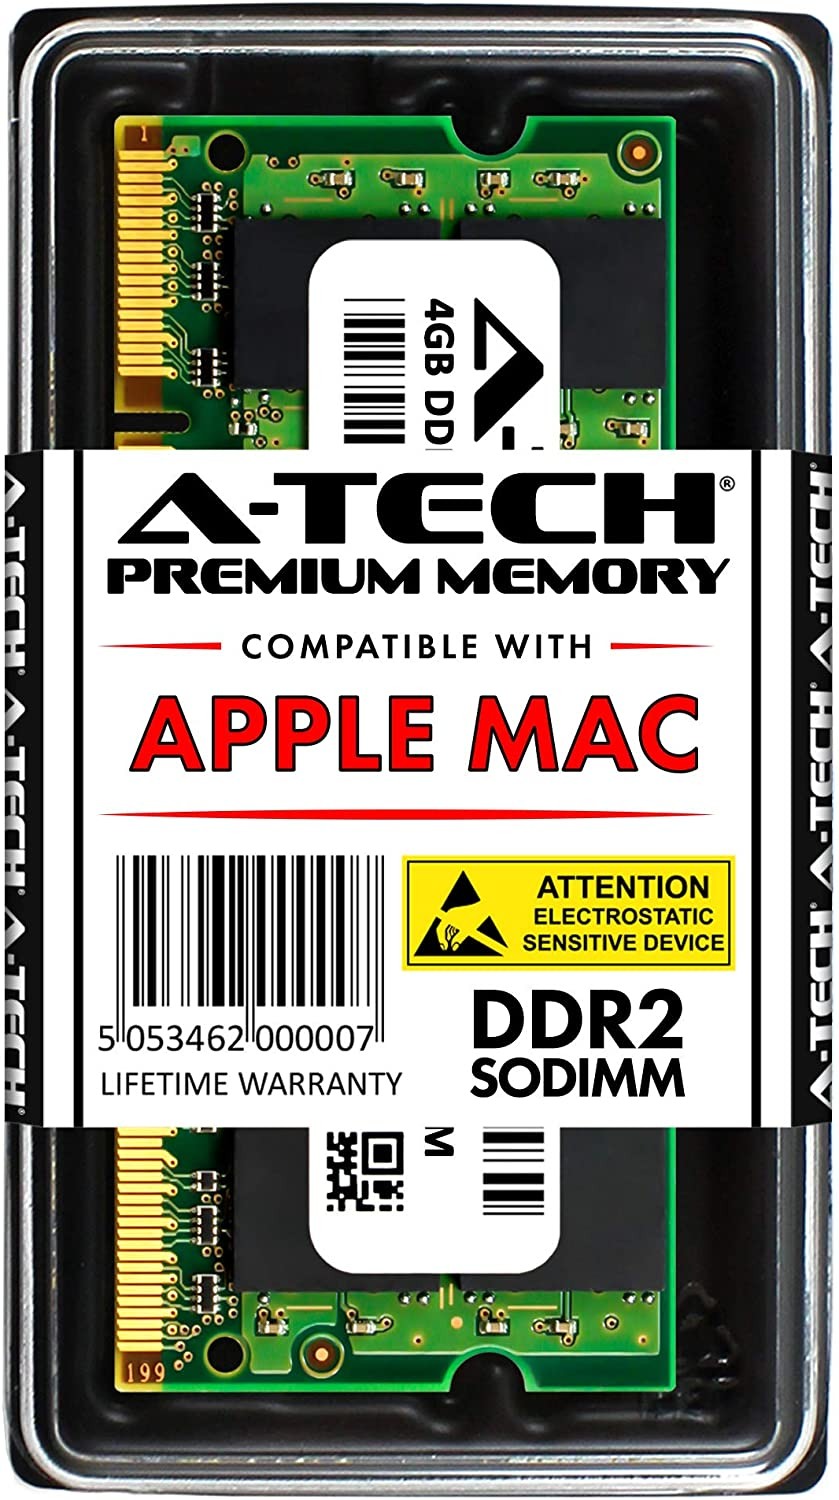 16GB 2x8GB PC3-12800S DDR3 1600 204-pin SO-DIMM For iMac 27-Inch Late 2012 A1419